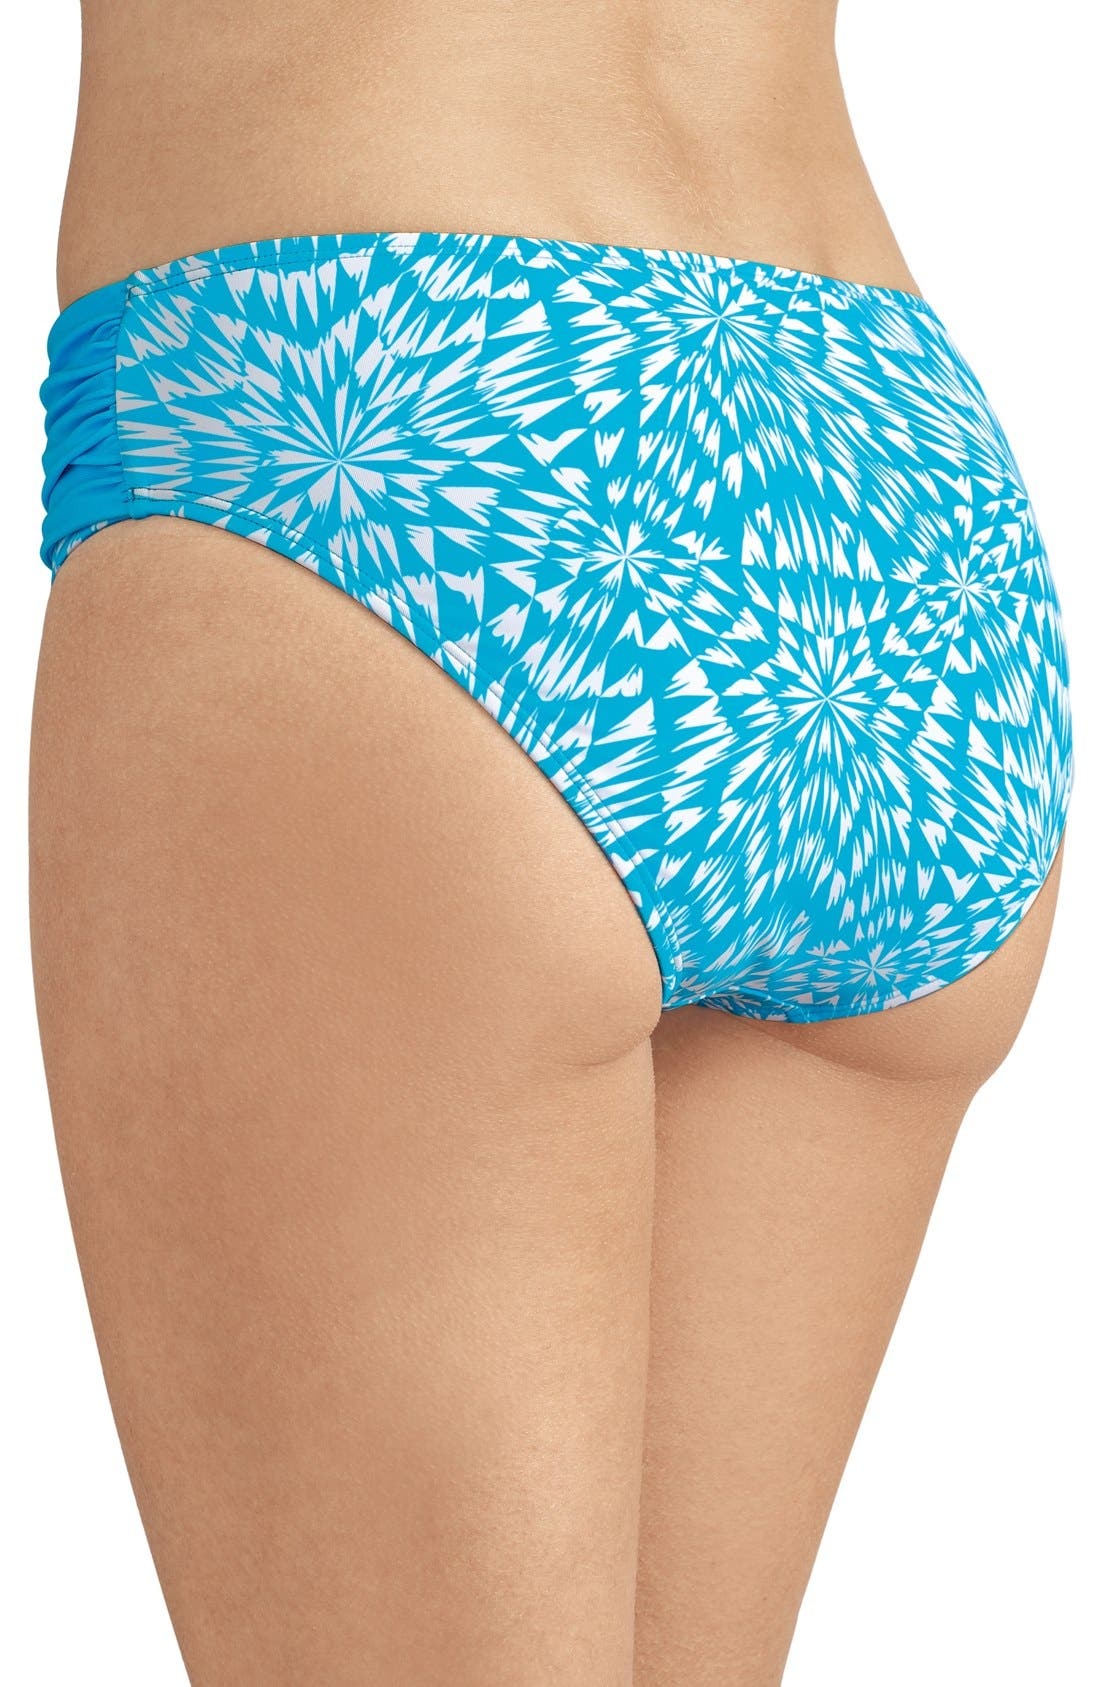 'Hawaii' Swim Briefs,                             Alternate thumbnail 2, color,                             Turquoise/ White